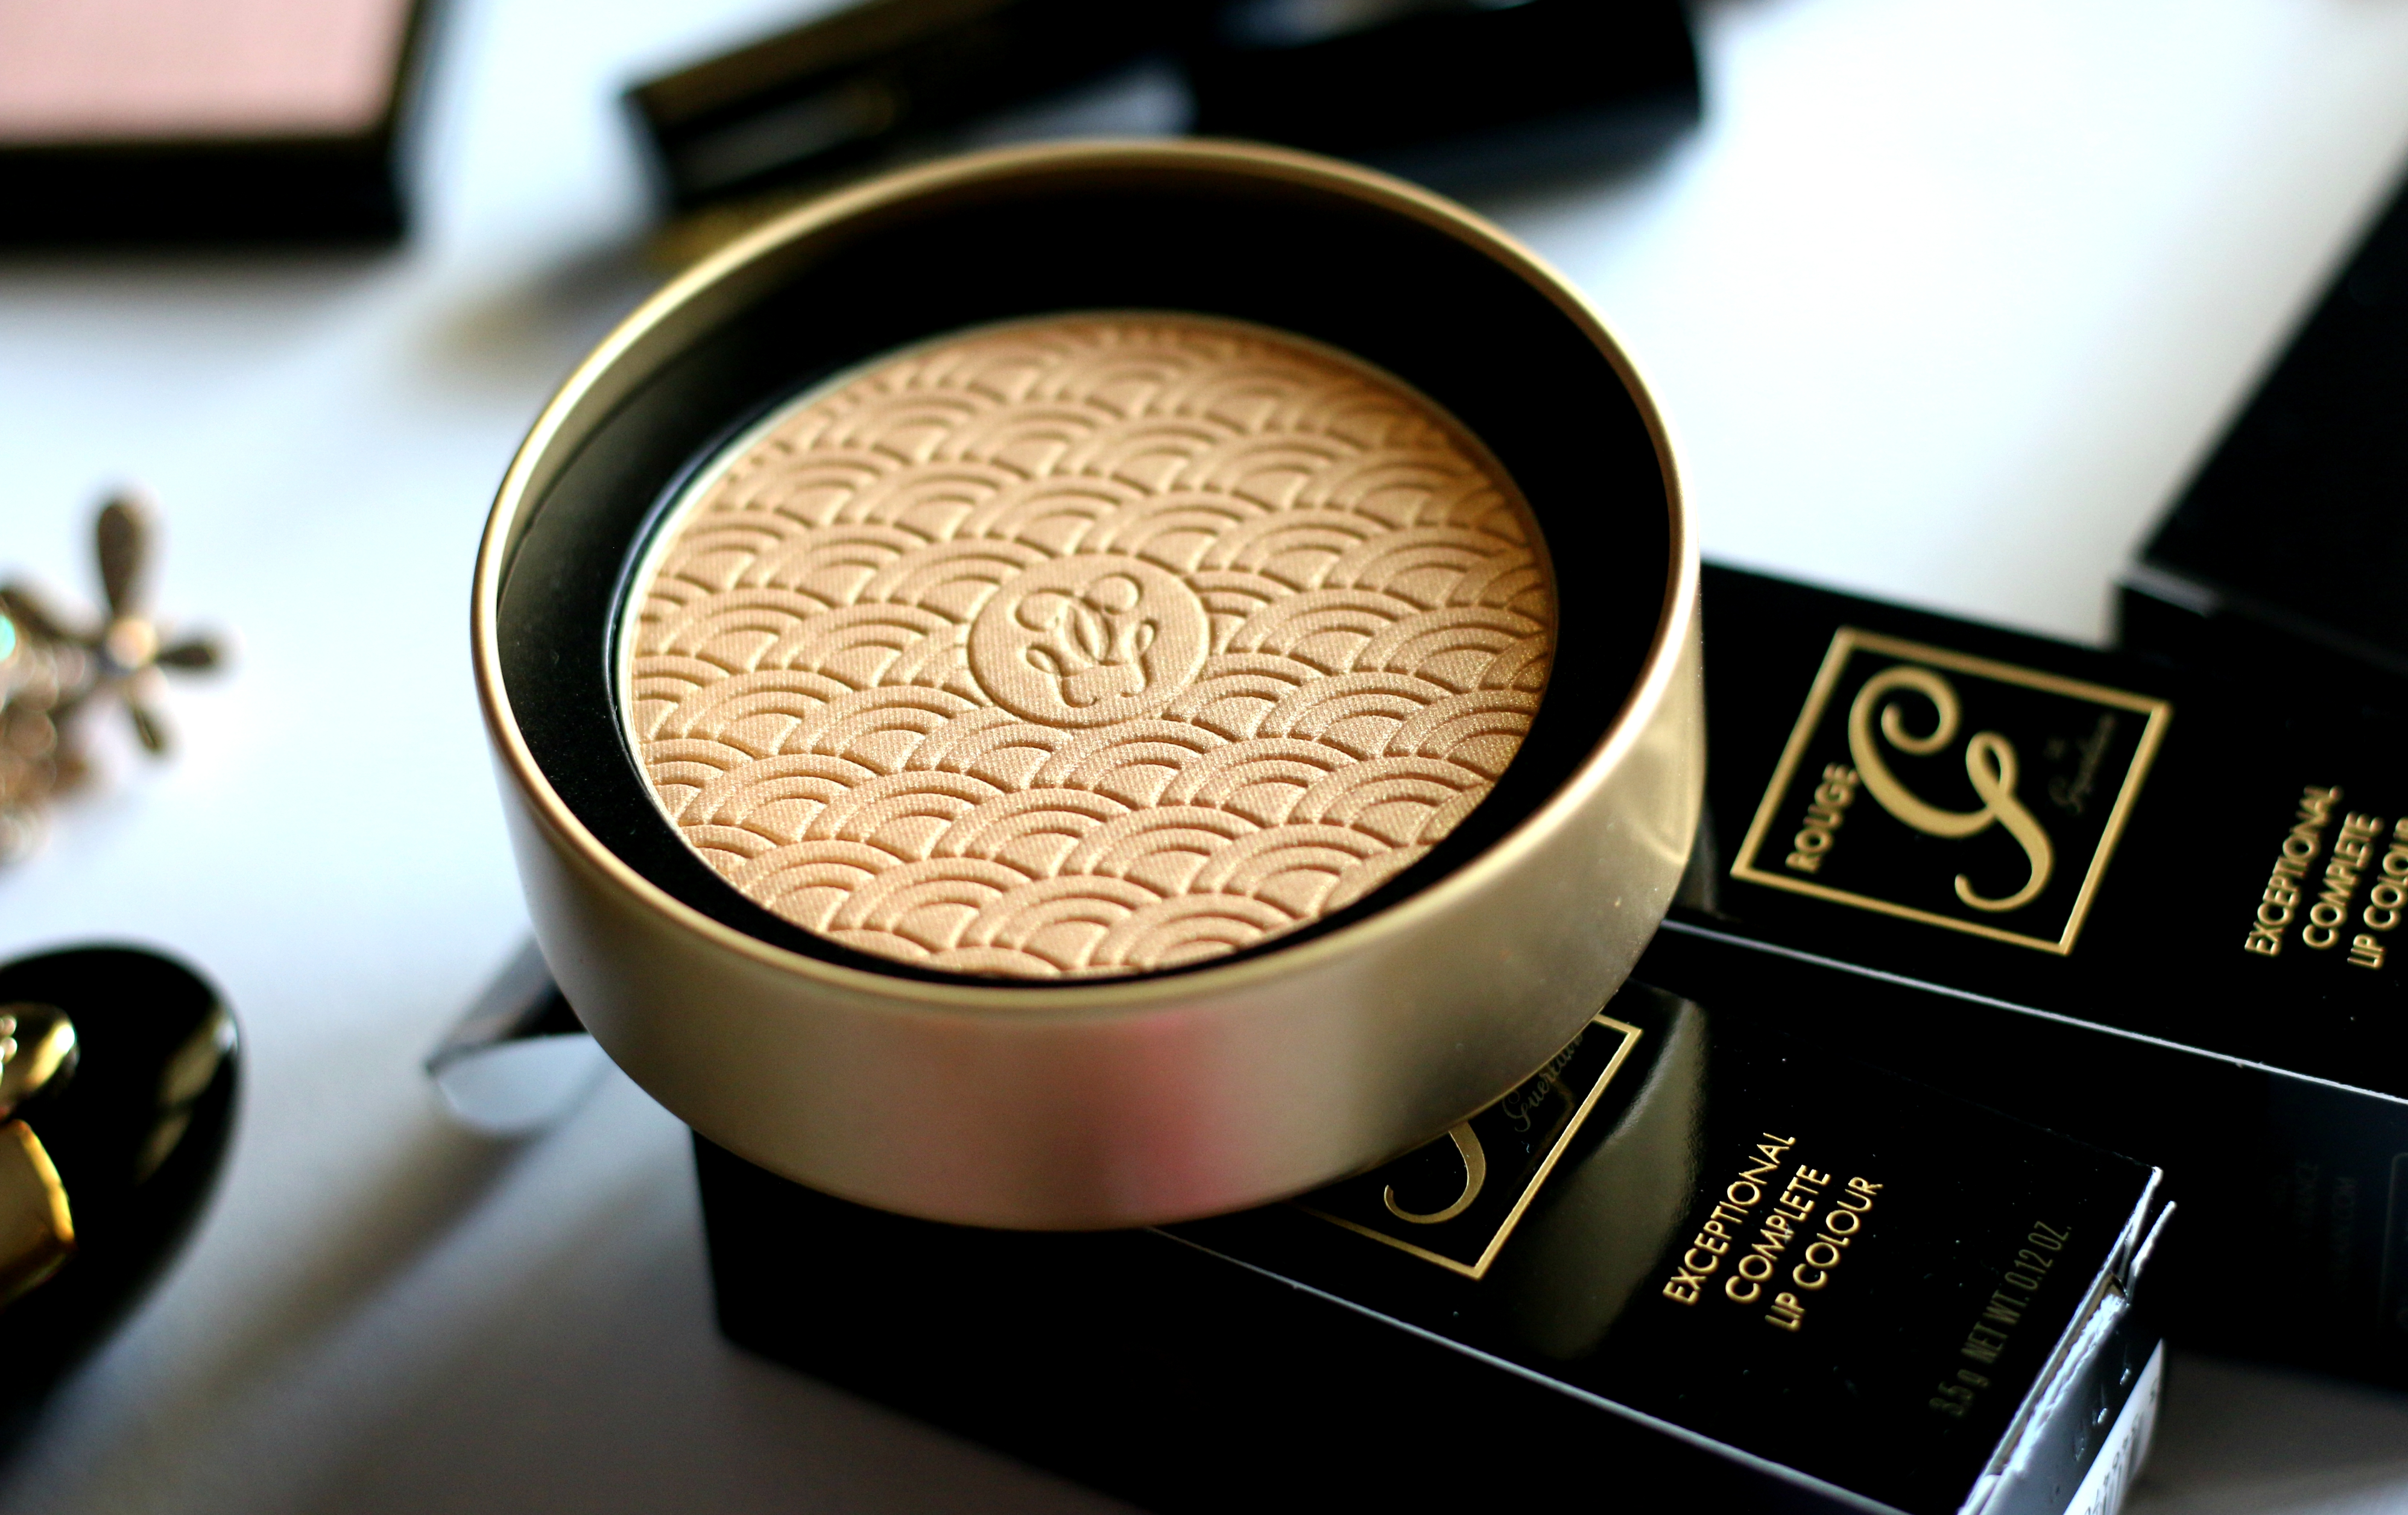 Guerlain Holiday 2017 Terracotta Gold Light Gold Bronzing Powder | Review & Swatches